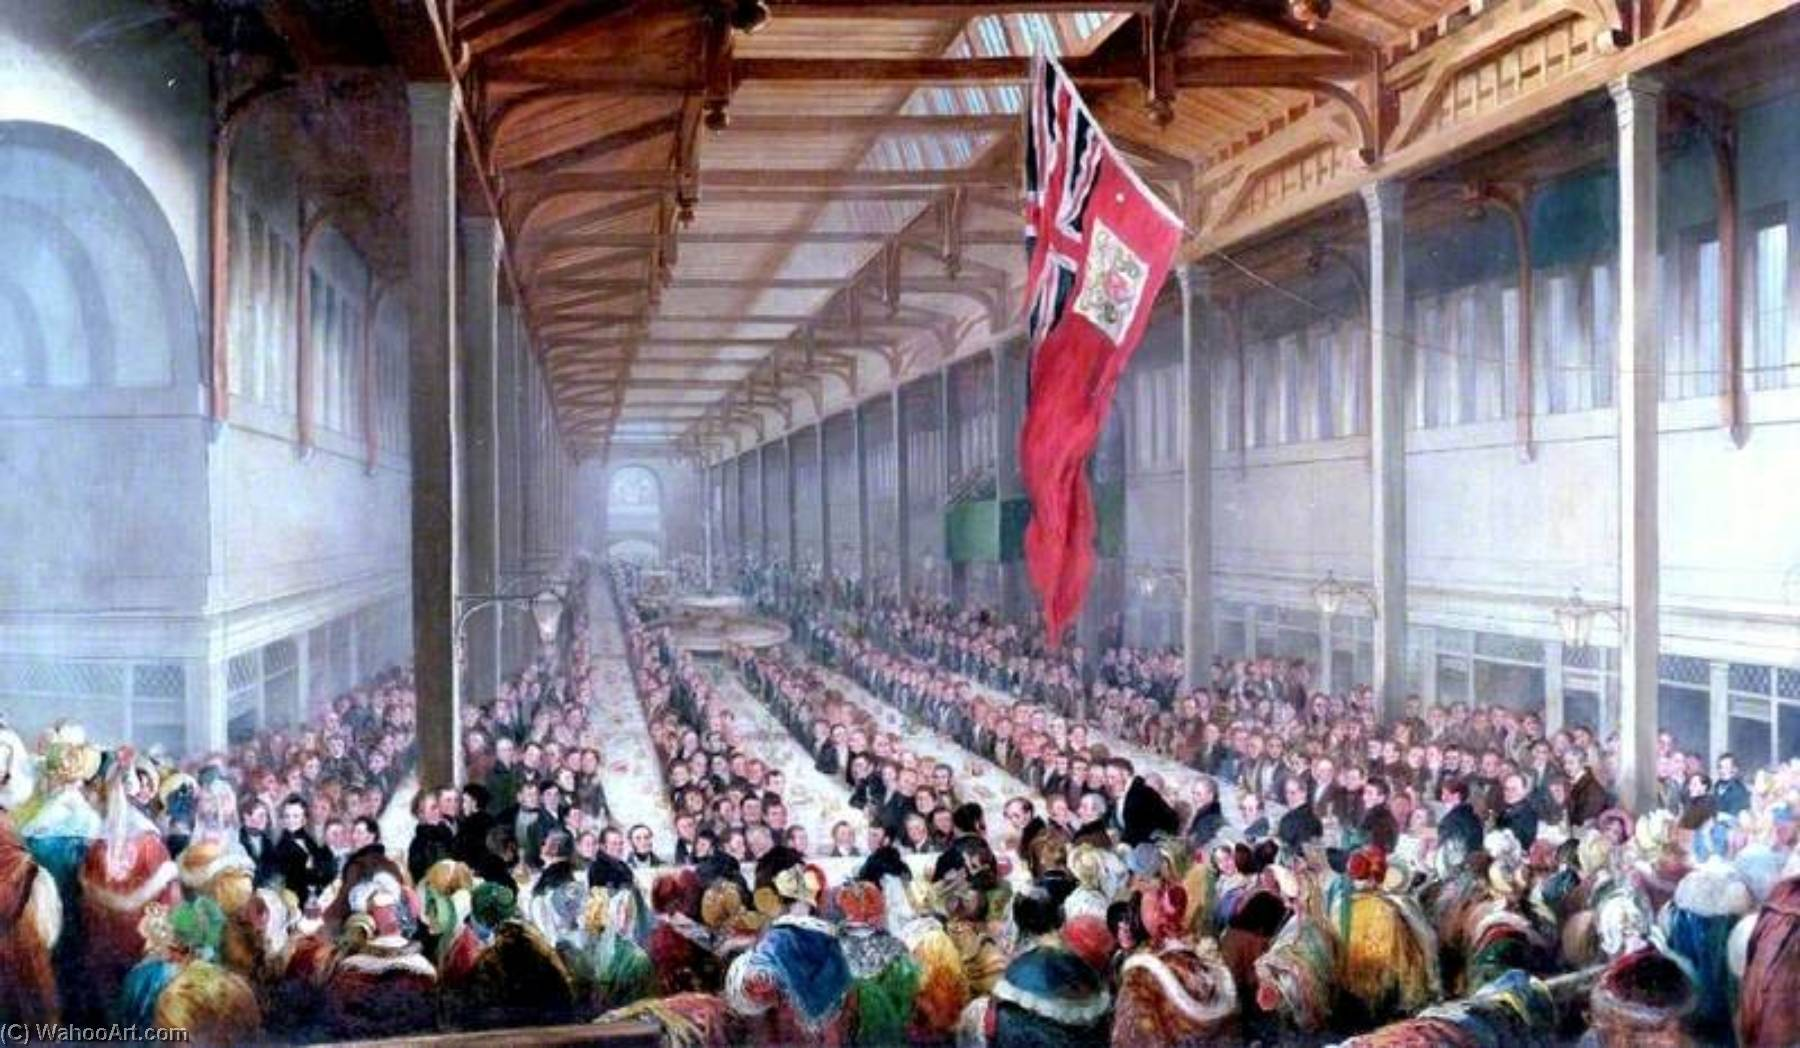 The Banquet Given on the Occasion of the Opening of the Grainger Market, Newcastle upon Tyne, 1835, 1835 by Henry Perlee Parker | Oil Painting | ArtsDot.com